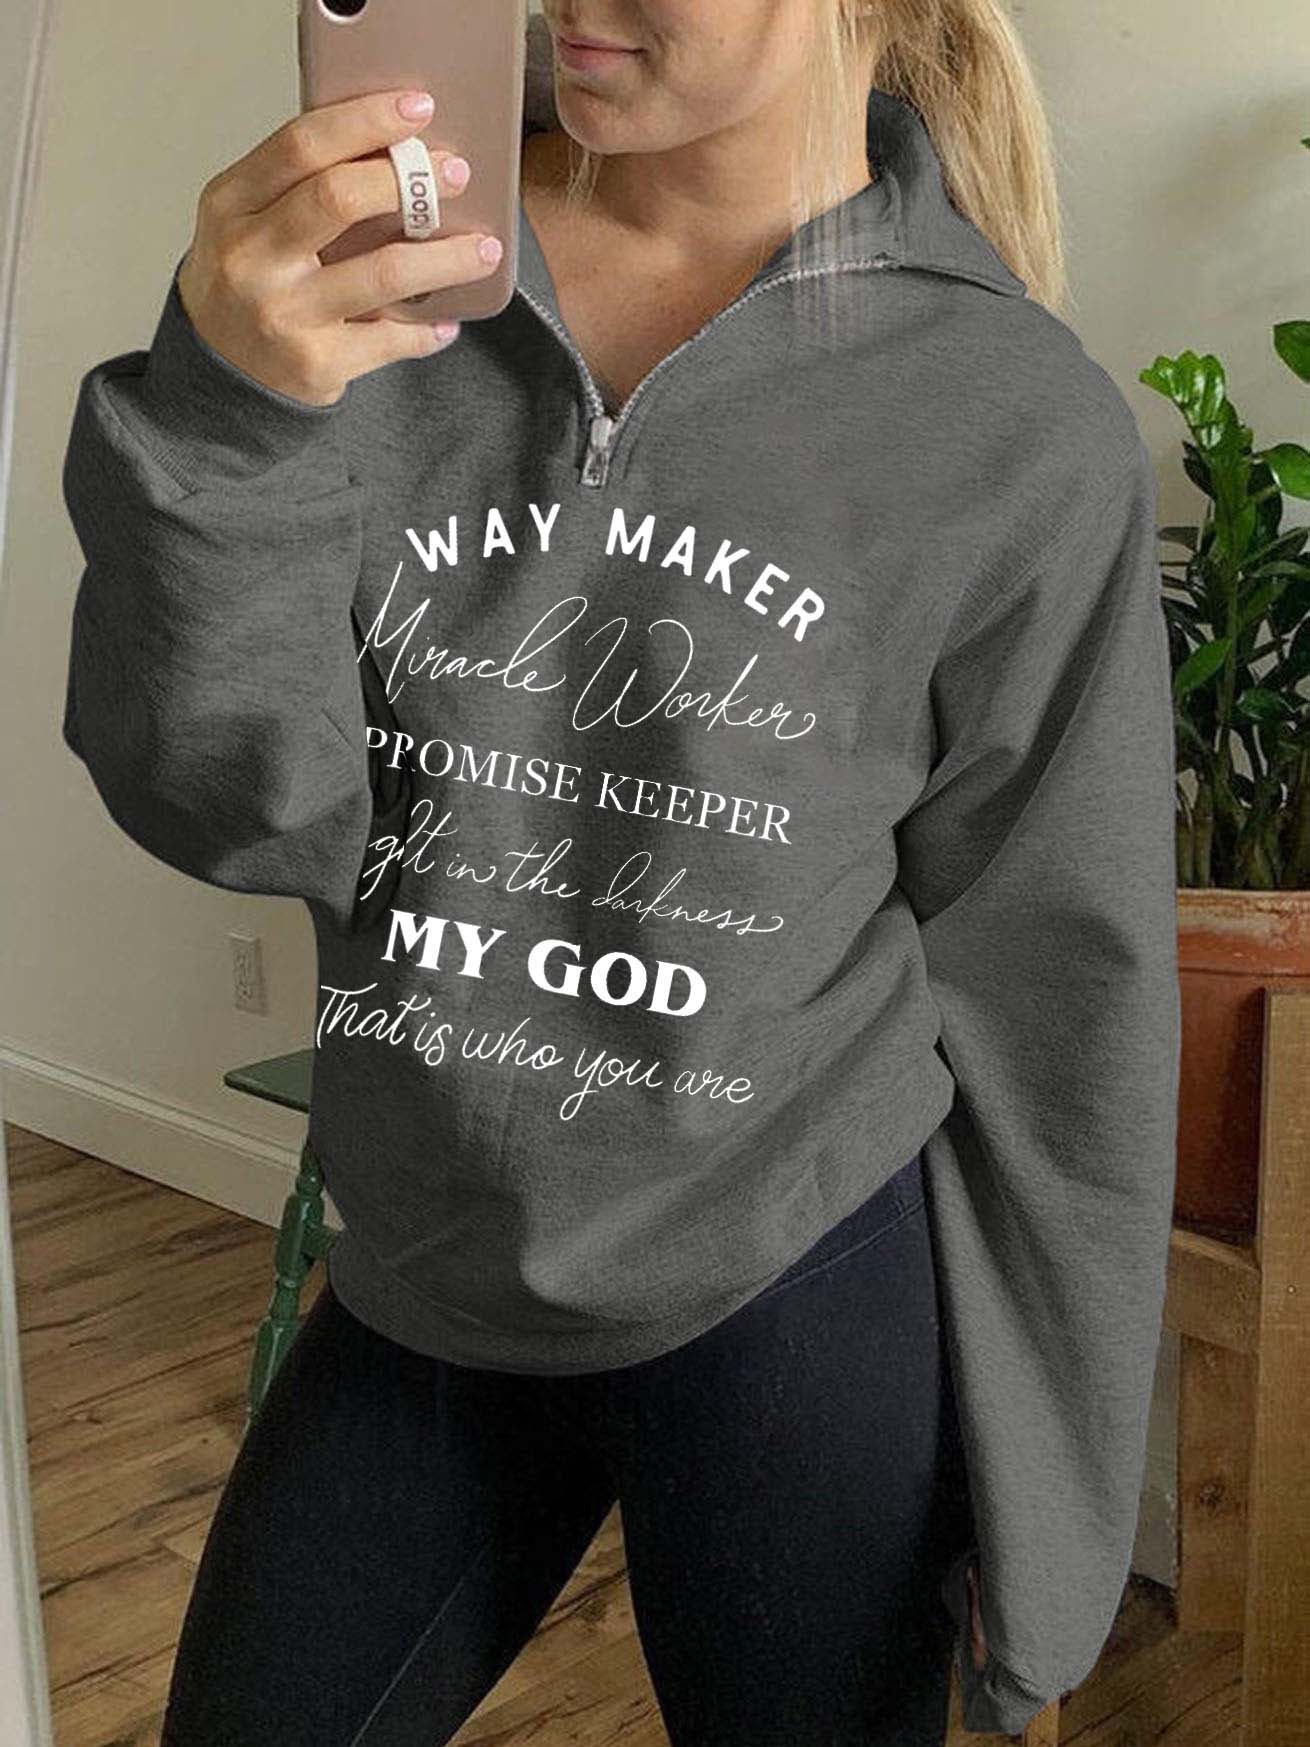 Women's Way Maker Miracle Worker Promise Keeper Light In The Darkness My God That Is Who You Are Zip-up Sweatshirt